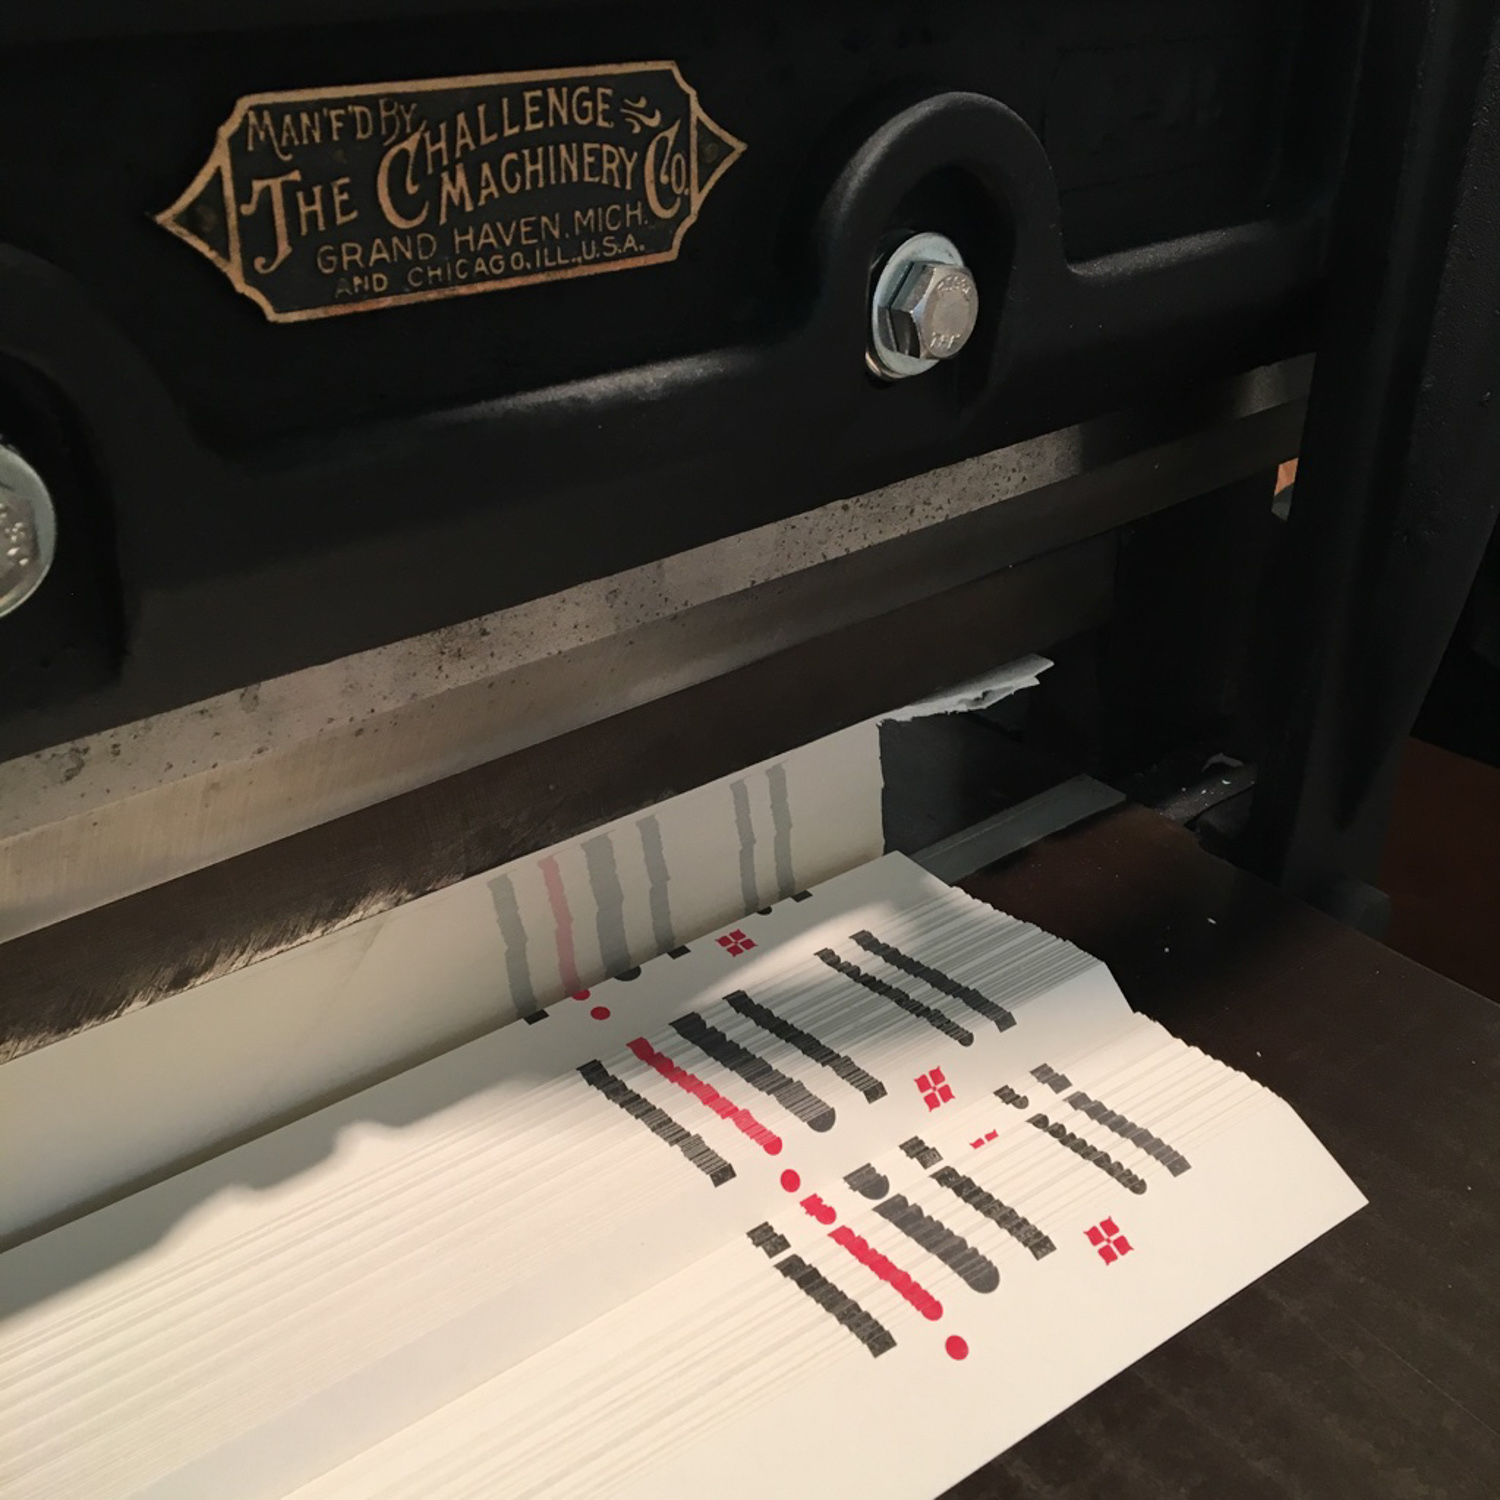 Trimming-prints-on-antique-paper-cutter-CH-2017.jpg